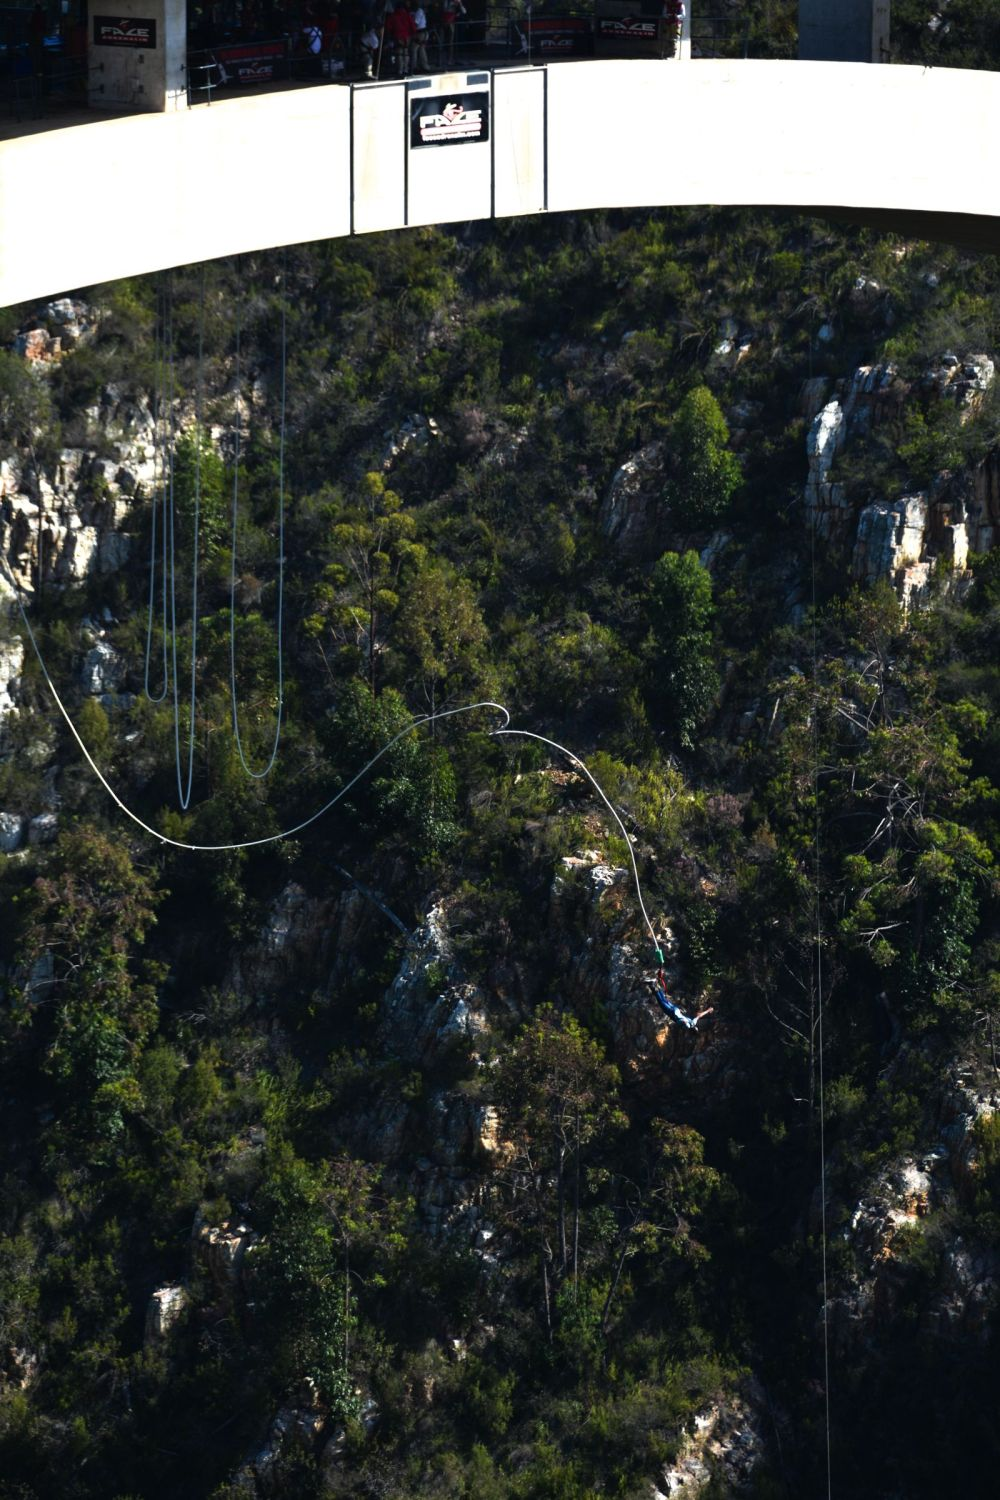 Eastern Cape Adventures In South Africa: Wines, 1,000 Year Old Trees And The Tallest Bungee In The World! (6)